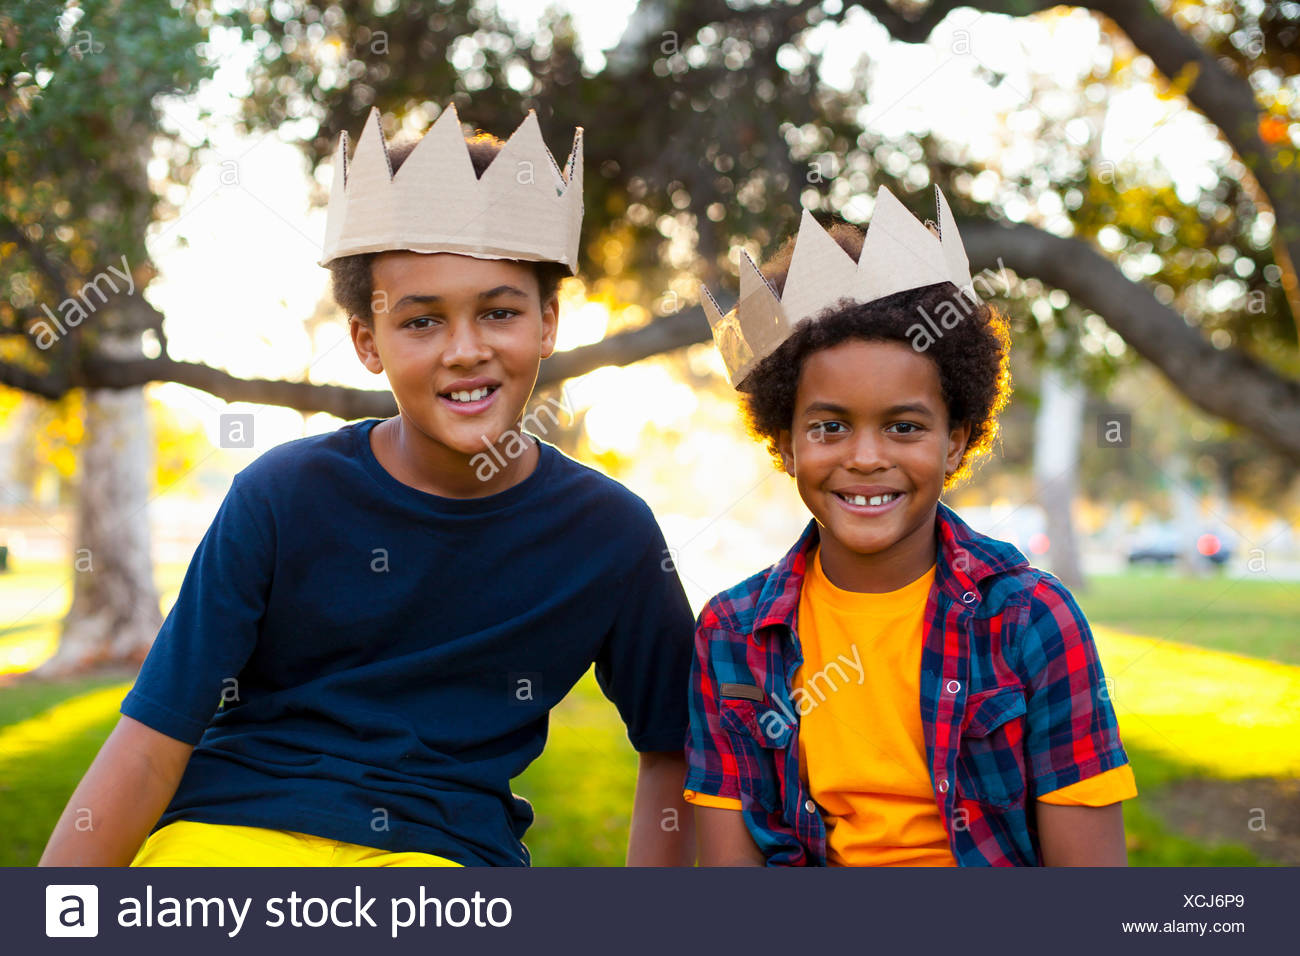 Portrait of two brothers with crowns on heads - Stock Image